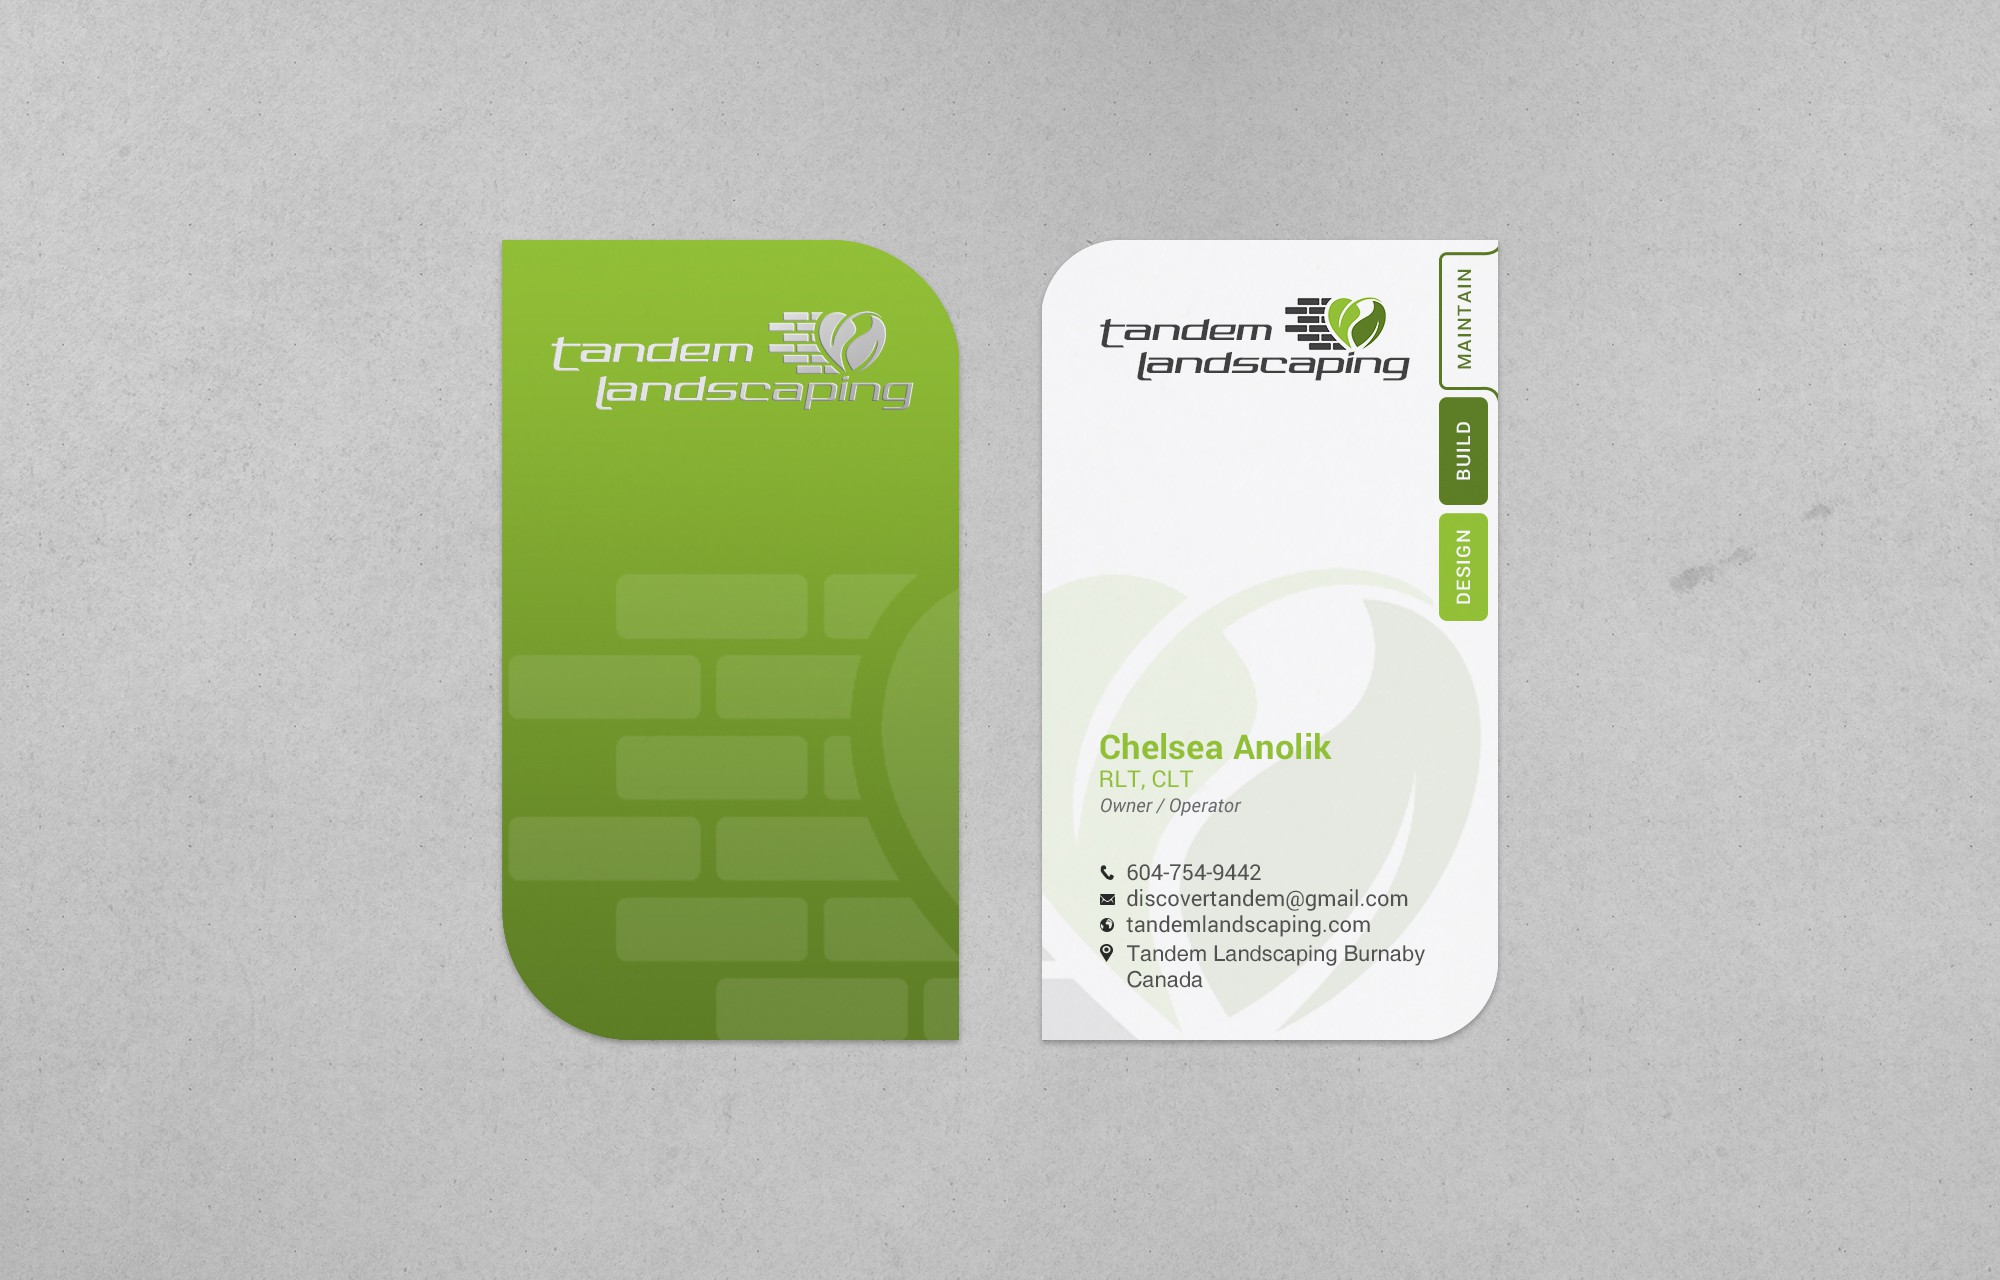 Business cards for modern and innovative Landscape/Construction company